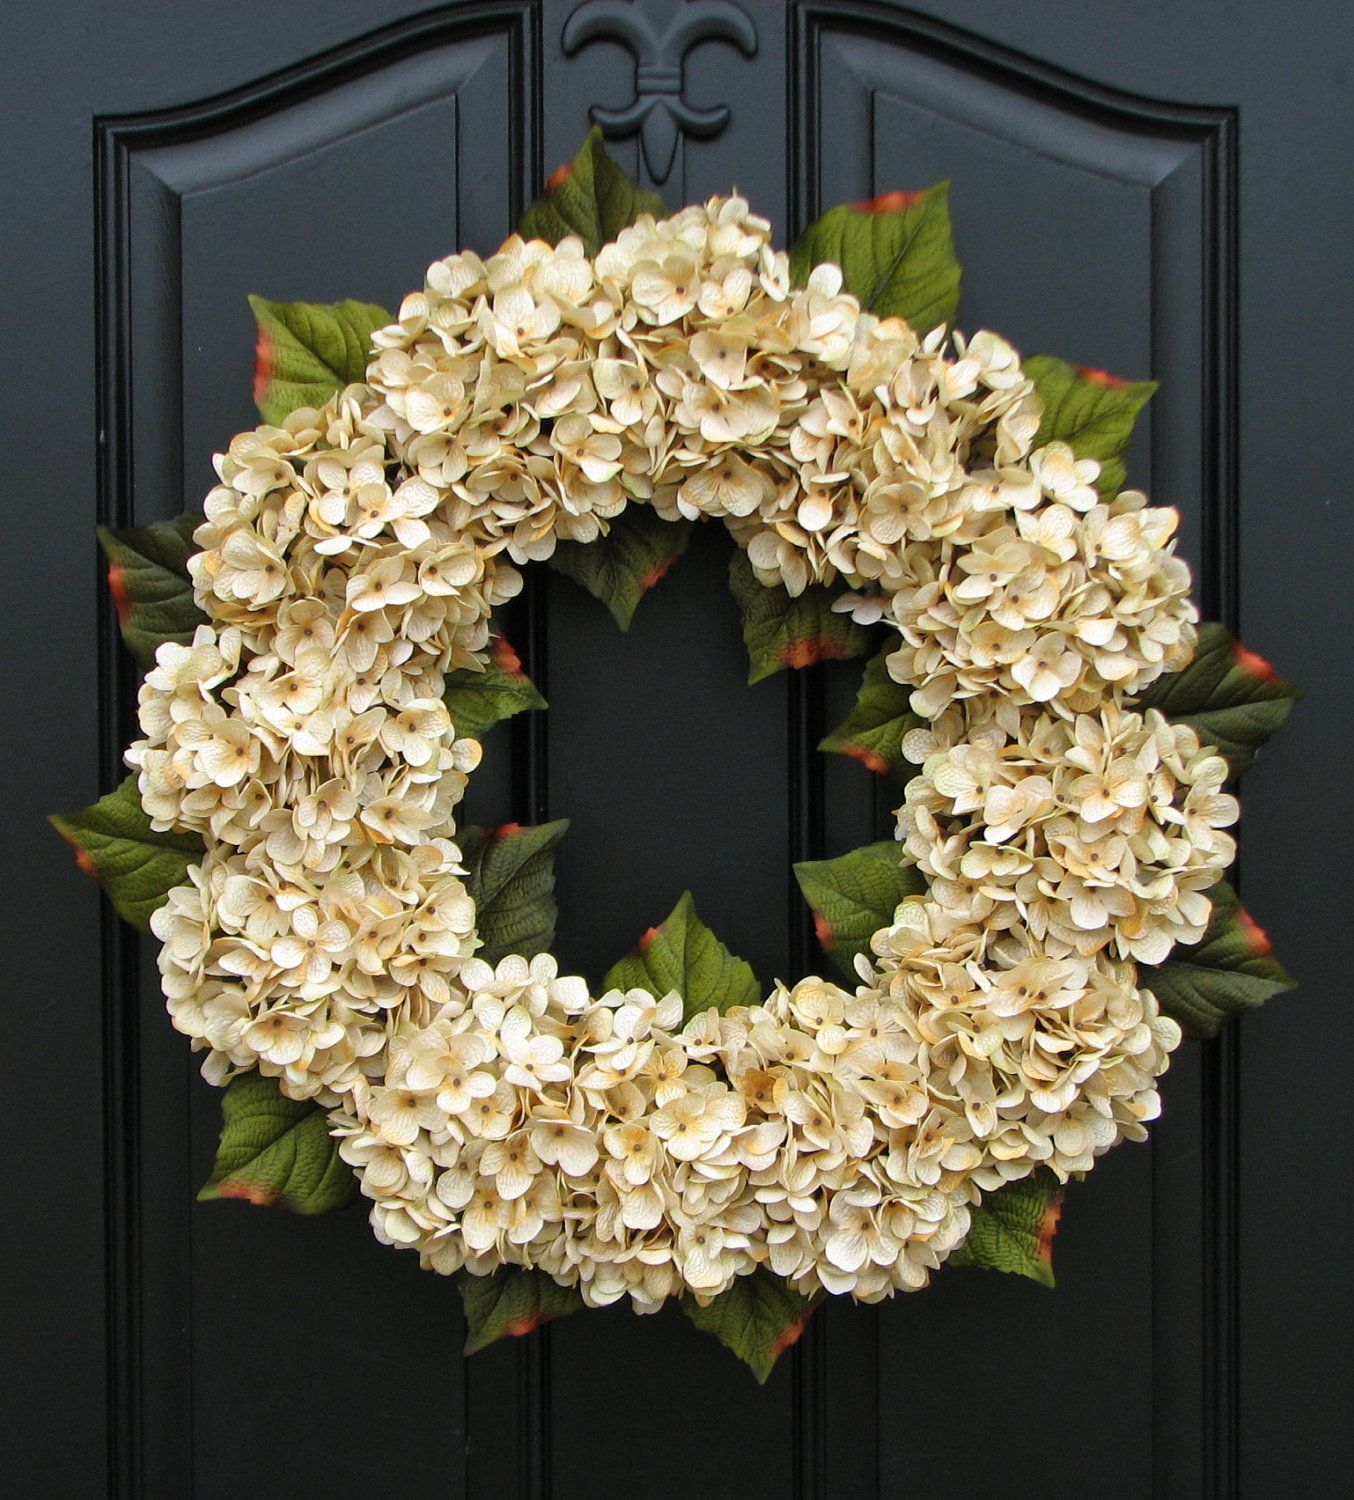 Modern wreaths for front door - Modern Wreaths For Front Door Wedding Decor Wedding Wreaths Champagne Front Door